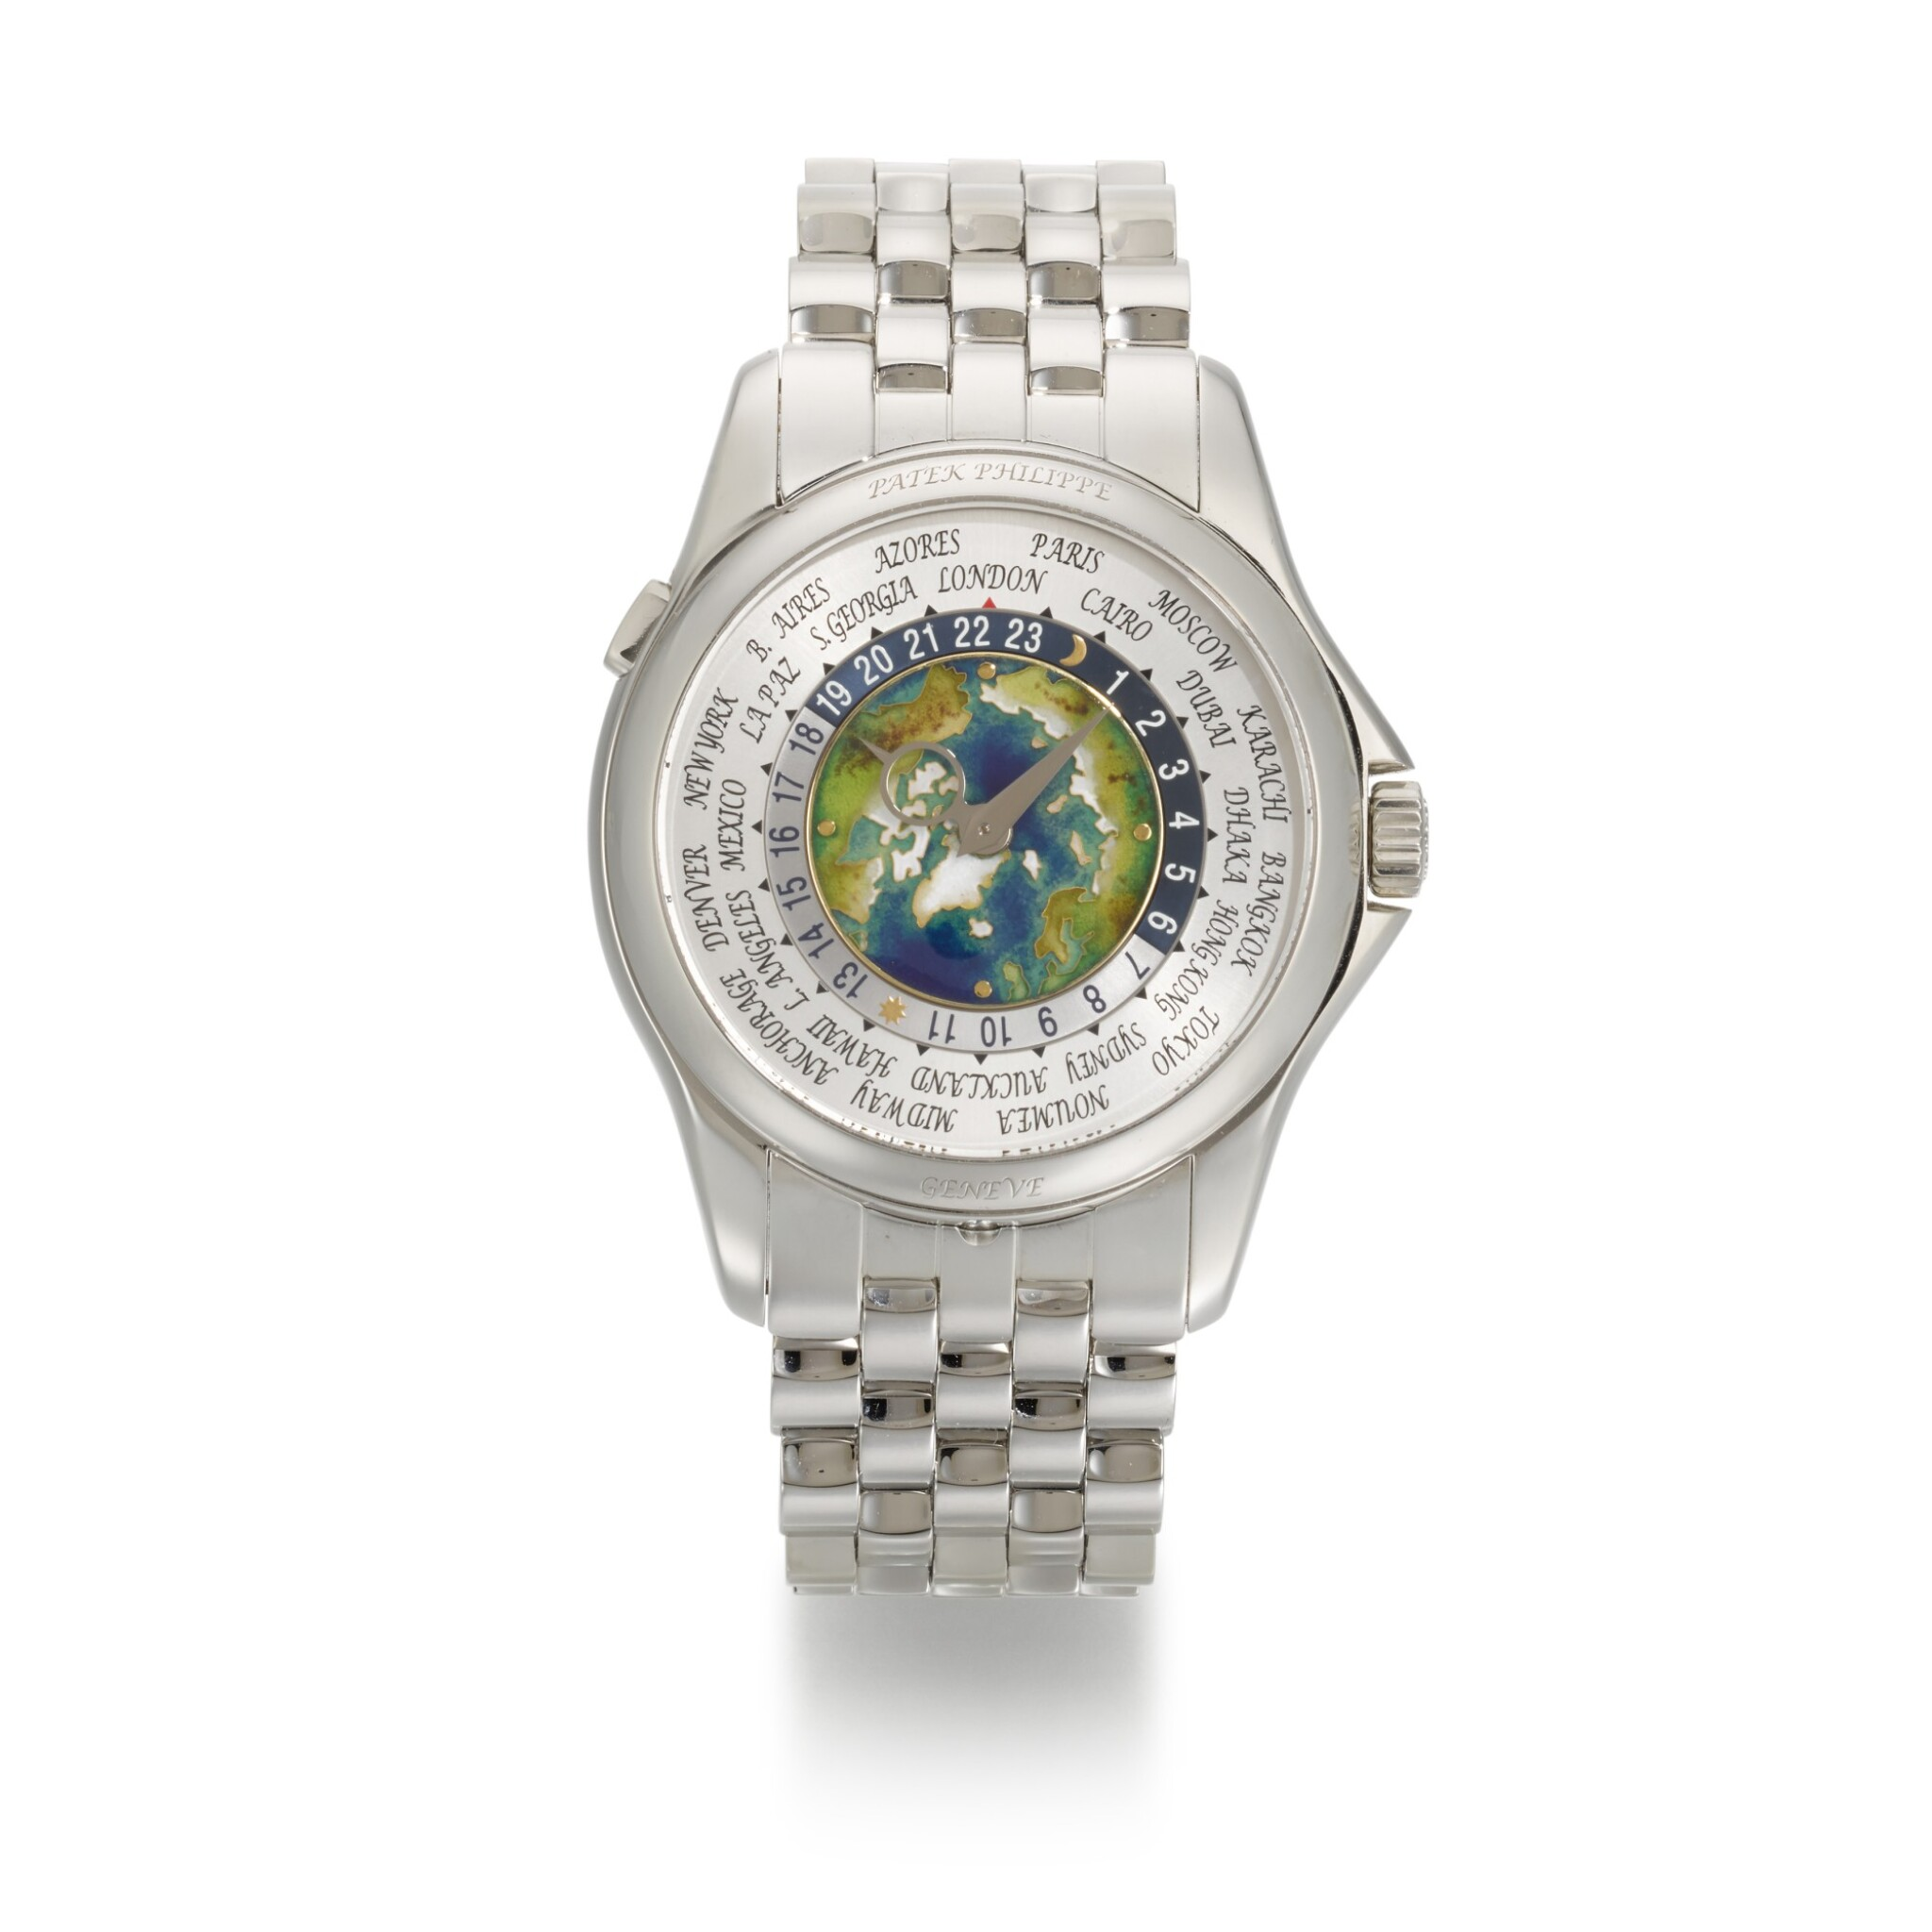 View full screen - View 1 of Lot 361. PATEK PHILIPPE   WORLD TIME, REF 5131/1P, PLATINUM WORLD TIME WRISTWATCH WITH CLOISONNE ENAMEL DIAL AND BRACELET, CIRCA 2018.